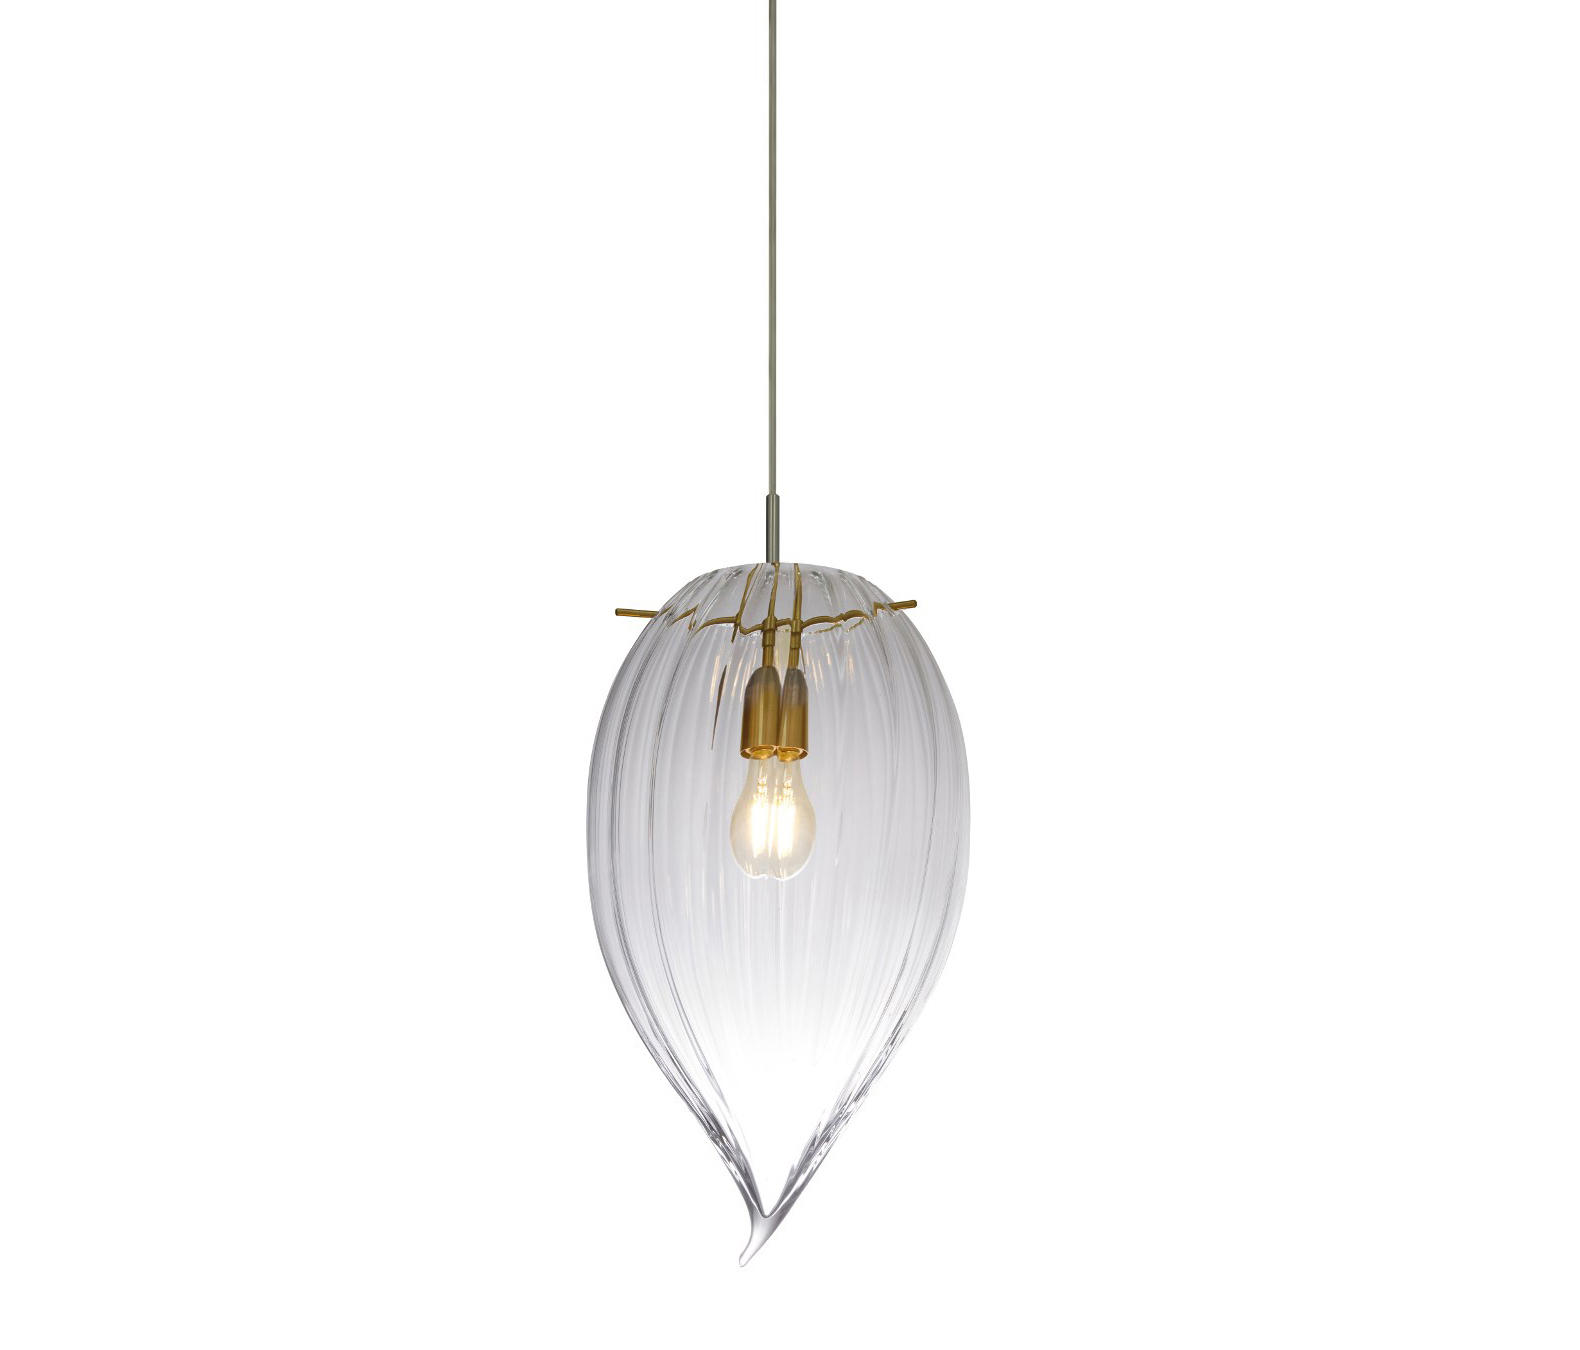 Onion Pendant Large Suspended Lights From Oggetti